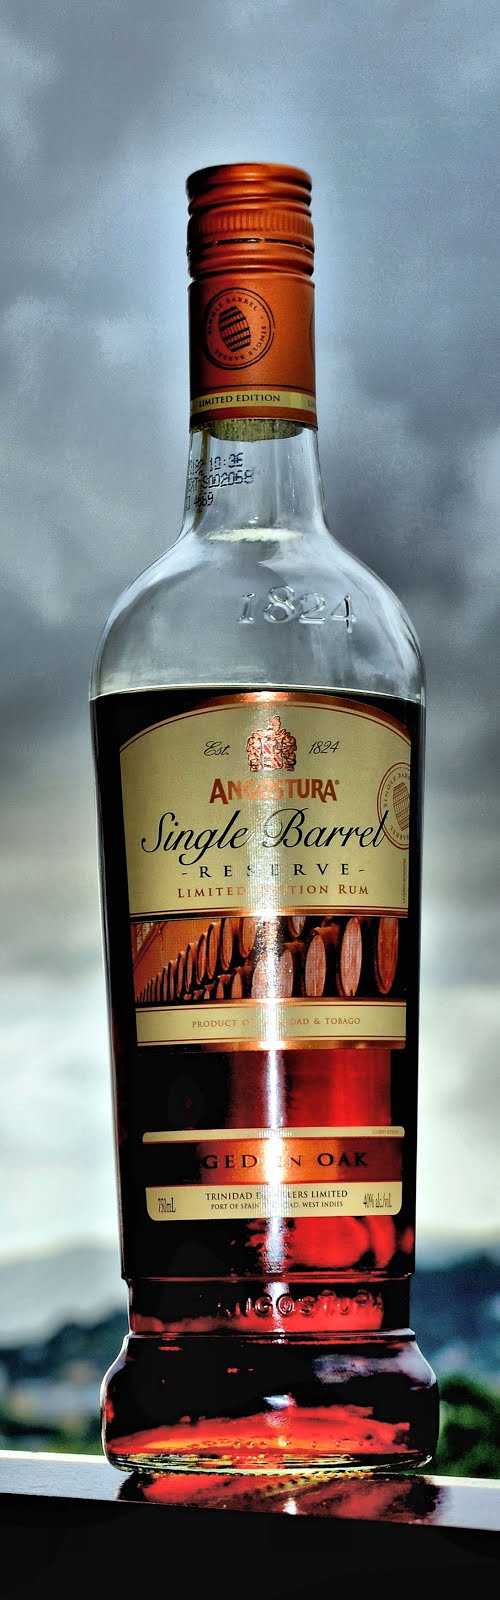 Bahama Bob's Rumstyles: Angostura Single Barrel Rum